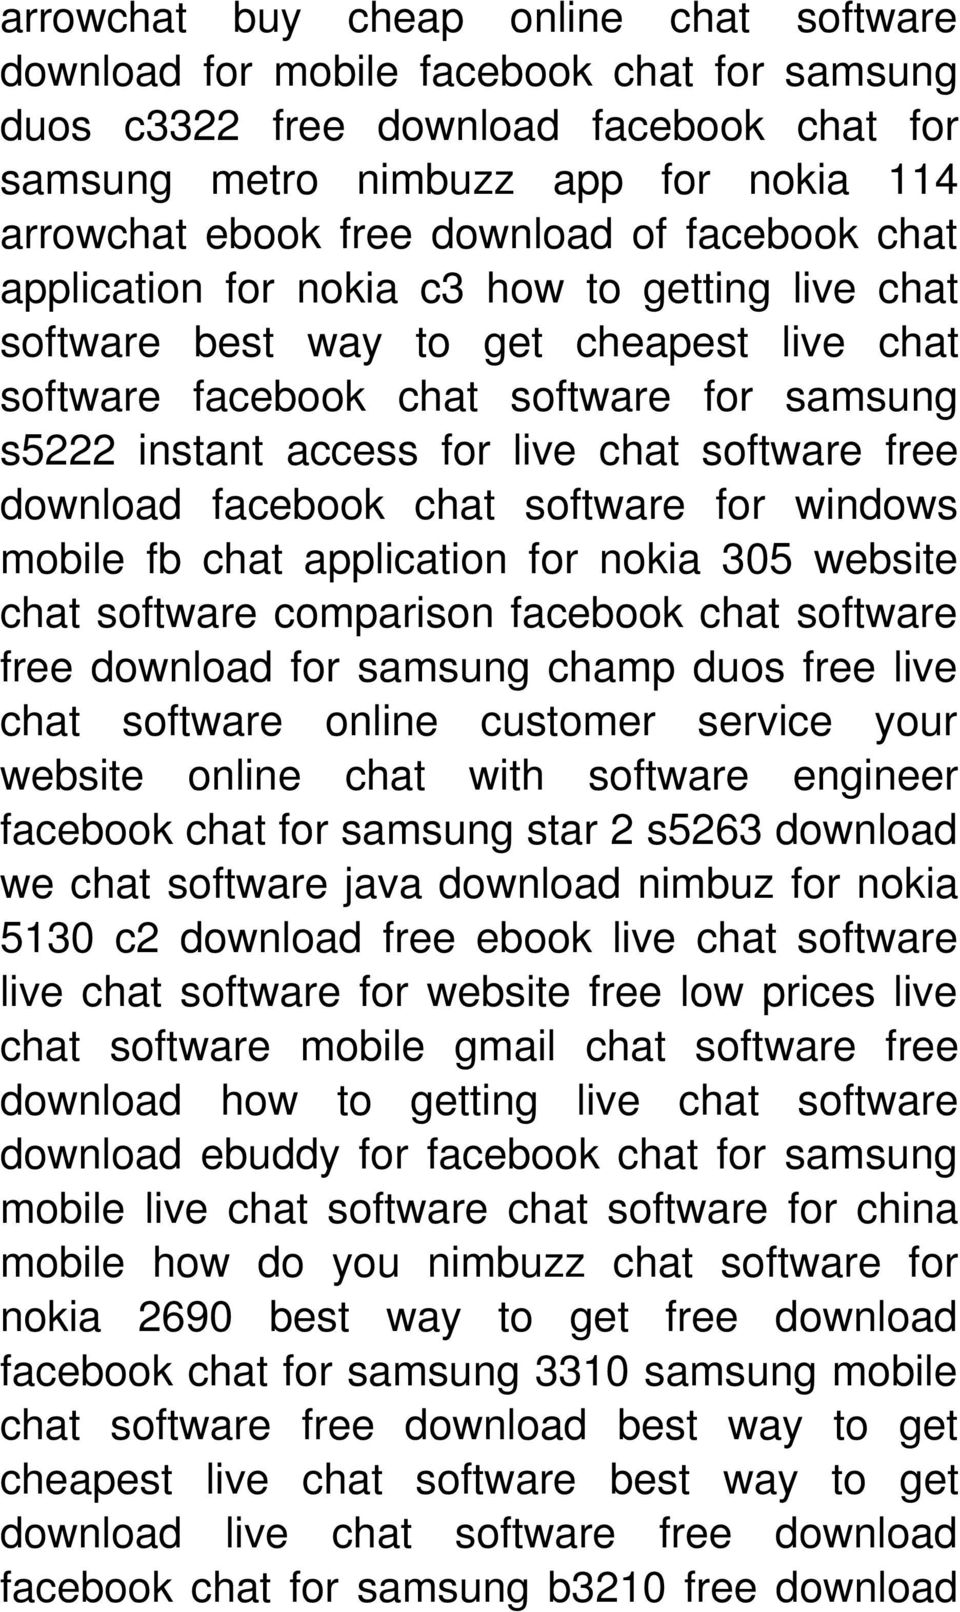 free download facebook chat software for windows mobile fb chat application for nokia 305 website chat software comparison facebook chat software free download for samsung champ duos free live chat